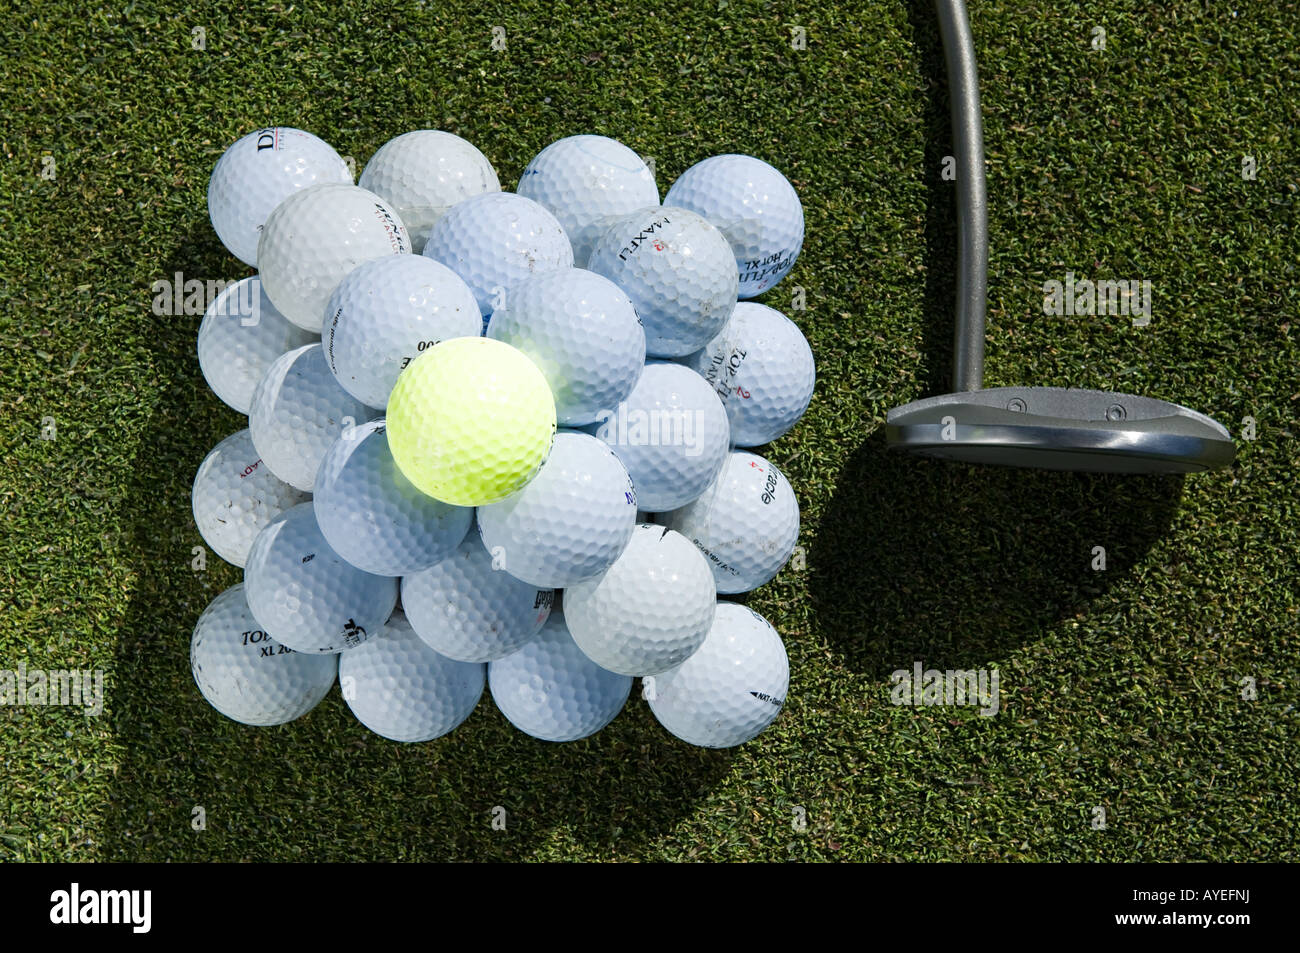 A stack of golf balls and a golf club - Stock Image